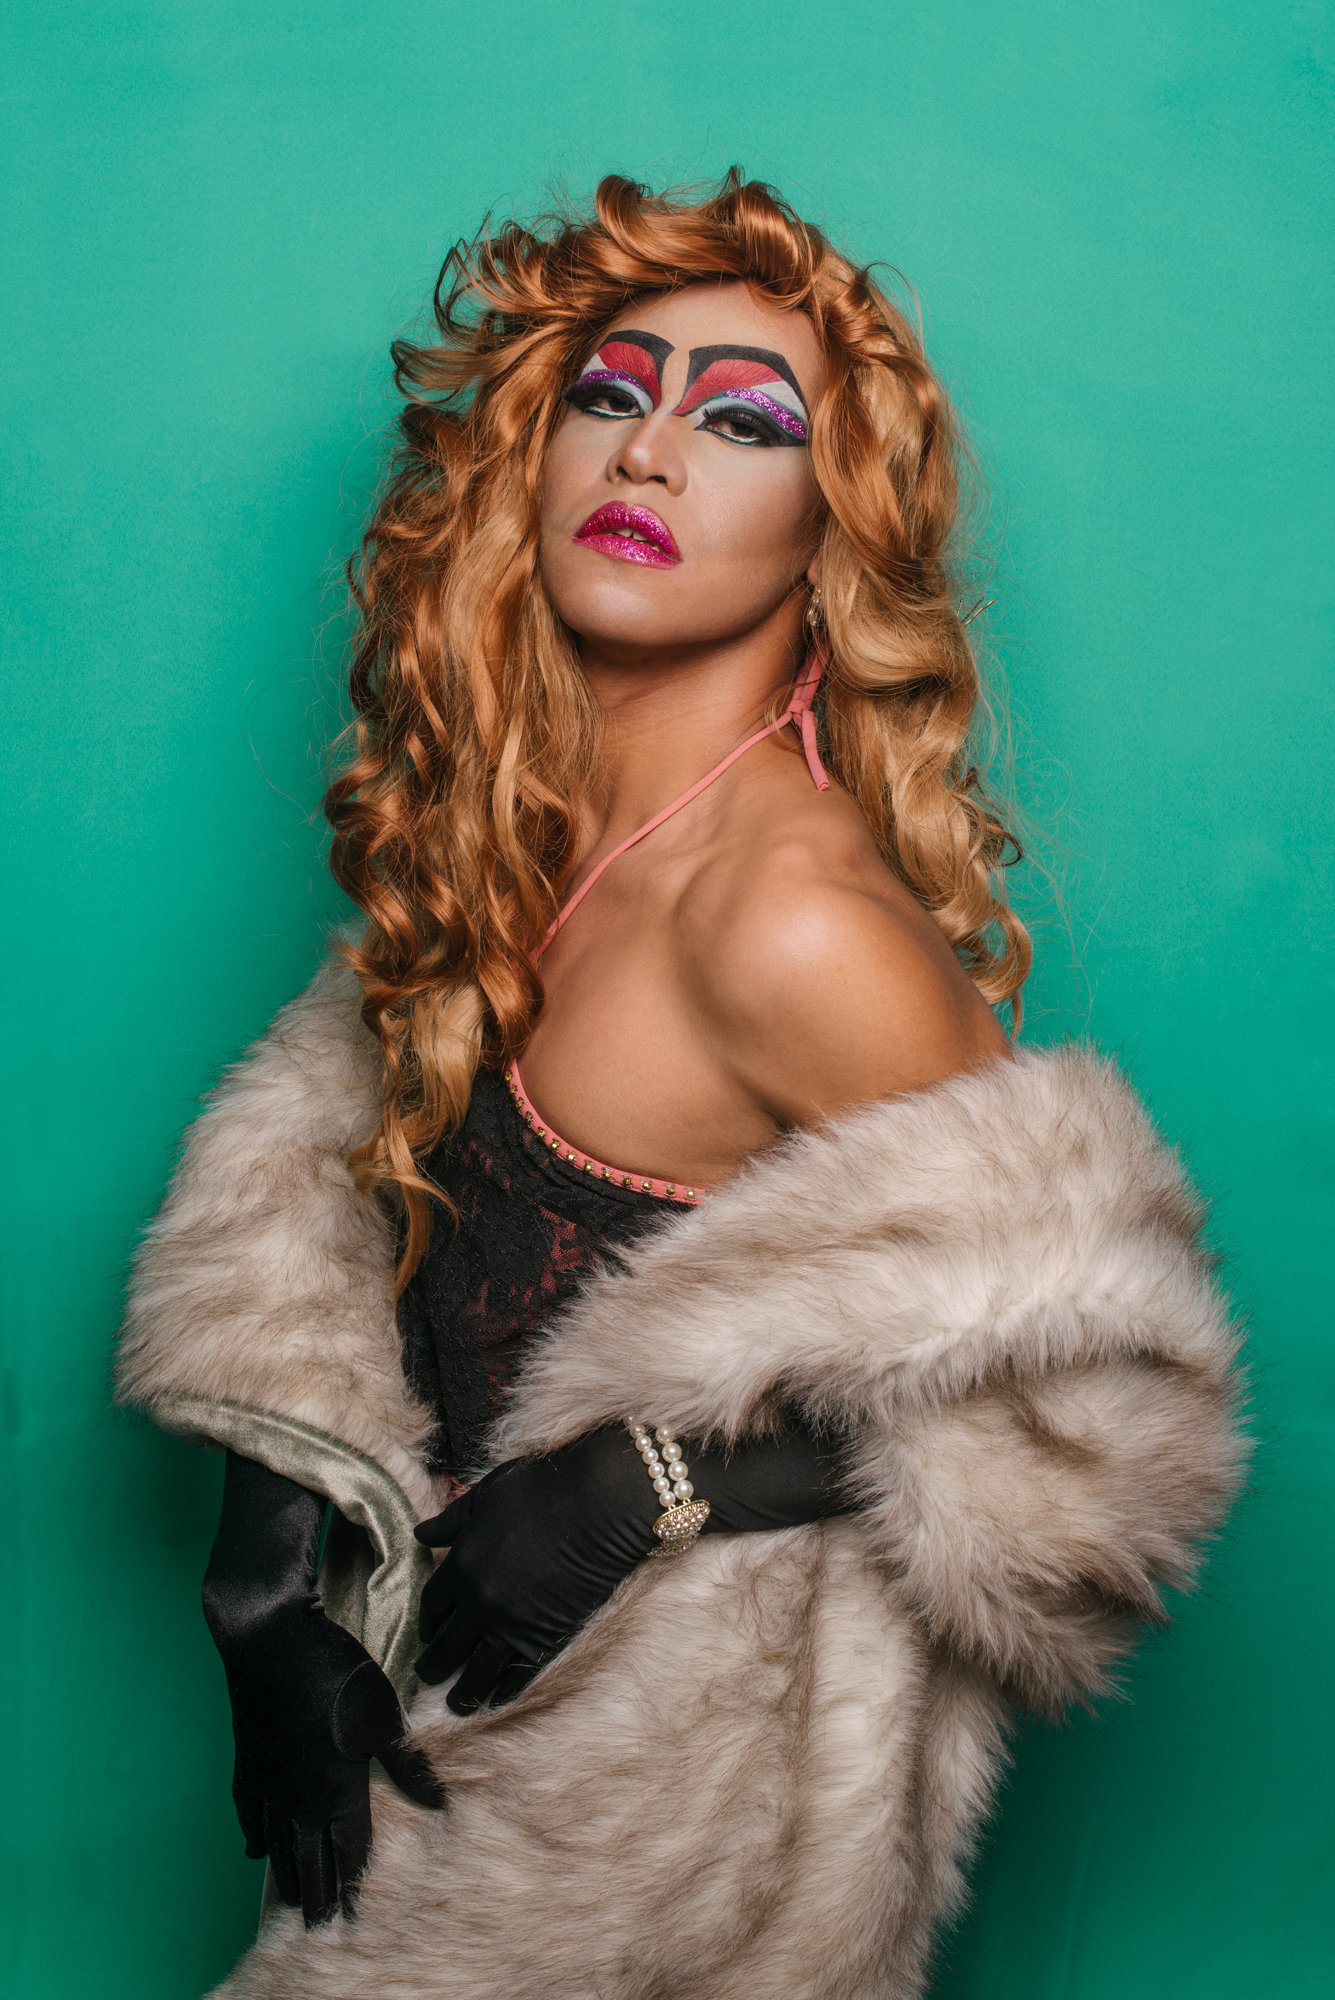 patrickrivera-Patrick-Rivera-photographer-gender-bender-dragqueen-manila-philippines-california-LA-US-photography-patrickriveraphotographer (7 of 7).jpg